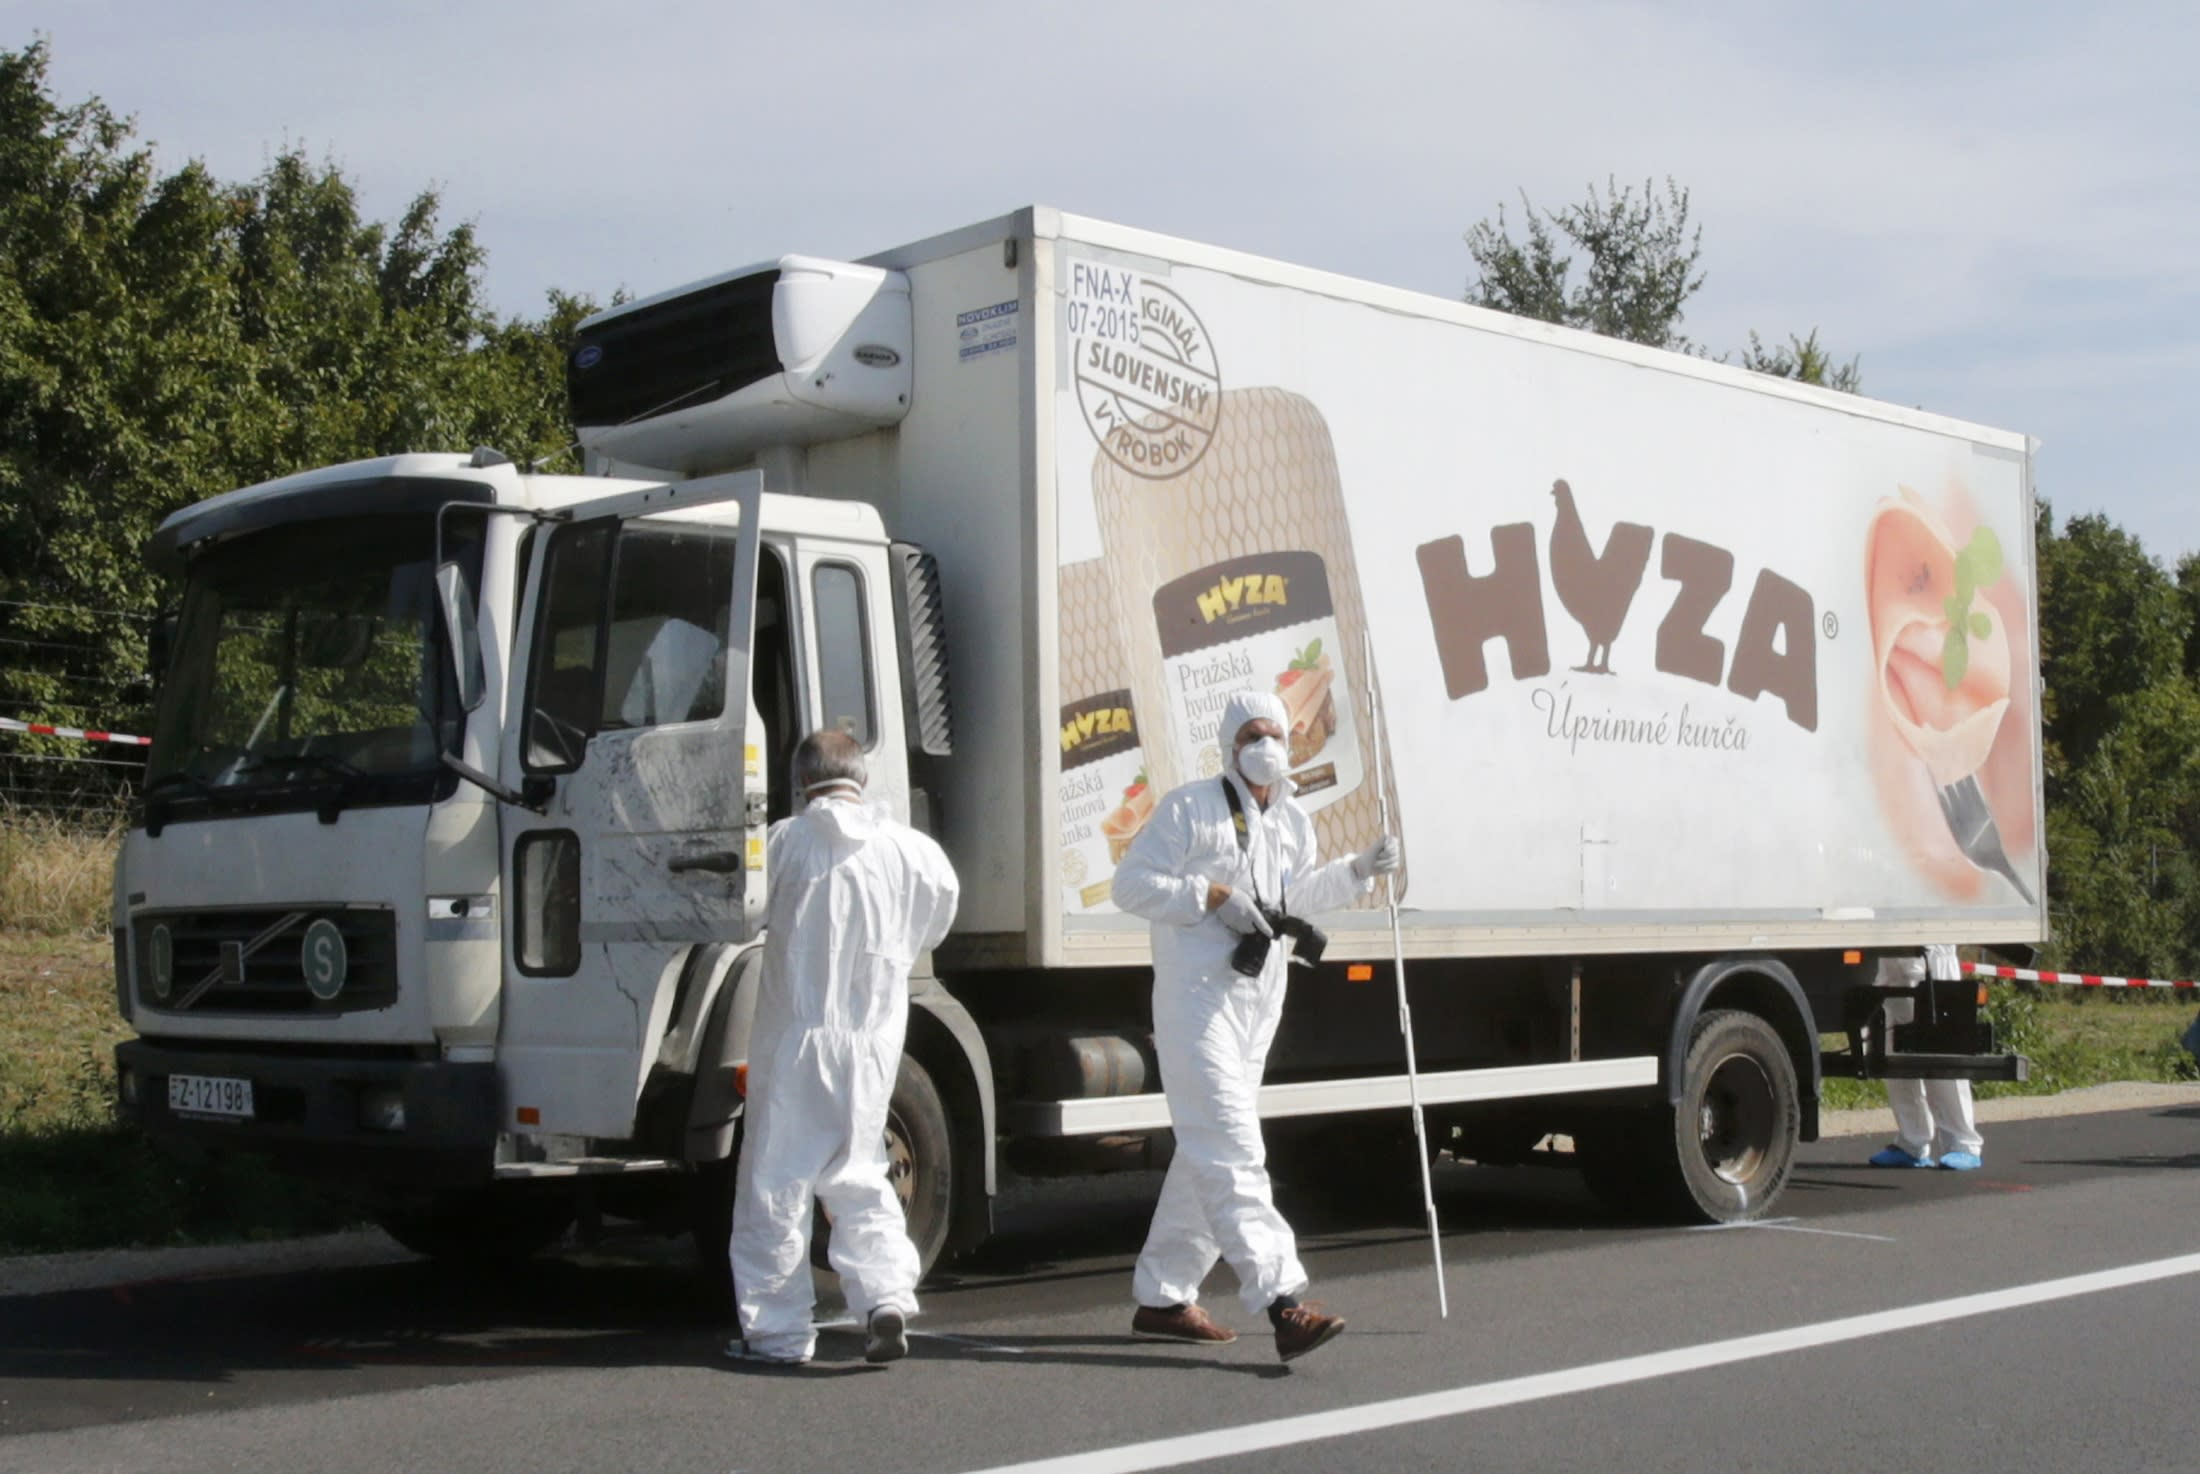 Migrants found dead in an abandoned truck in Austria